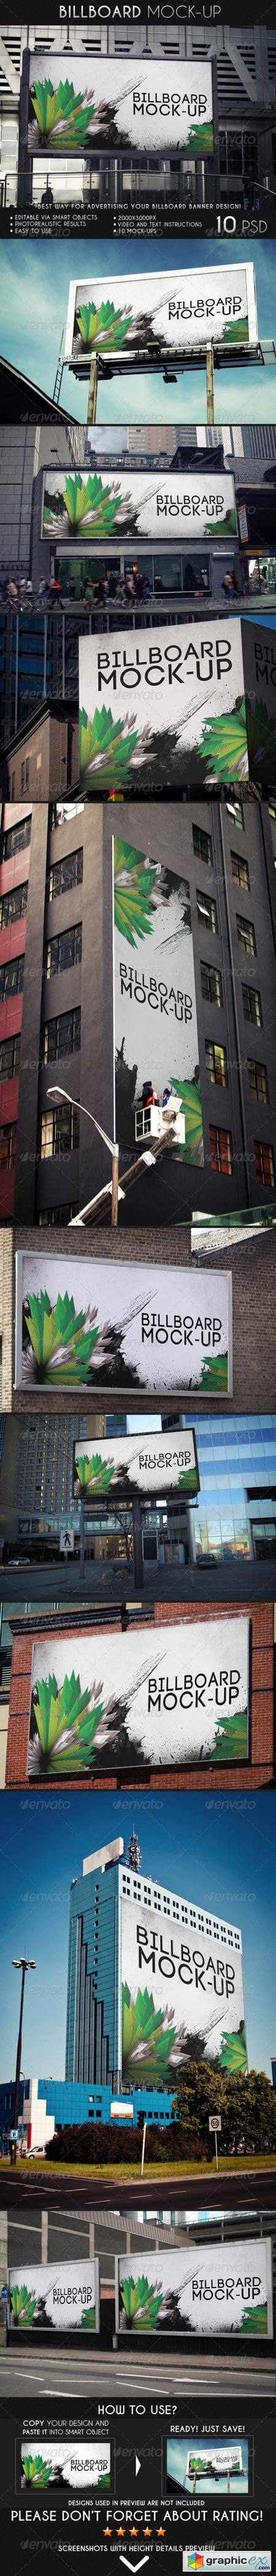 Billboard Mock-Up 6993838